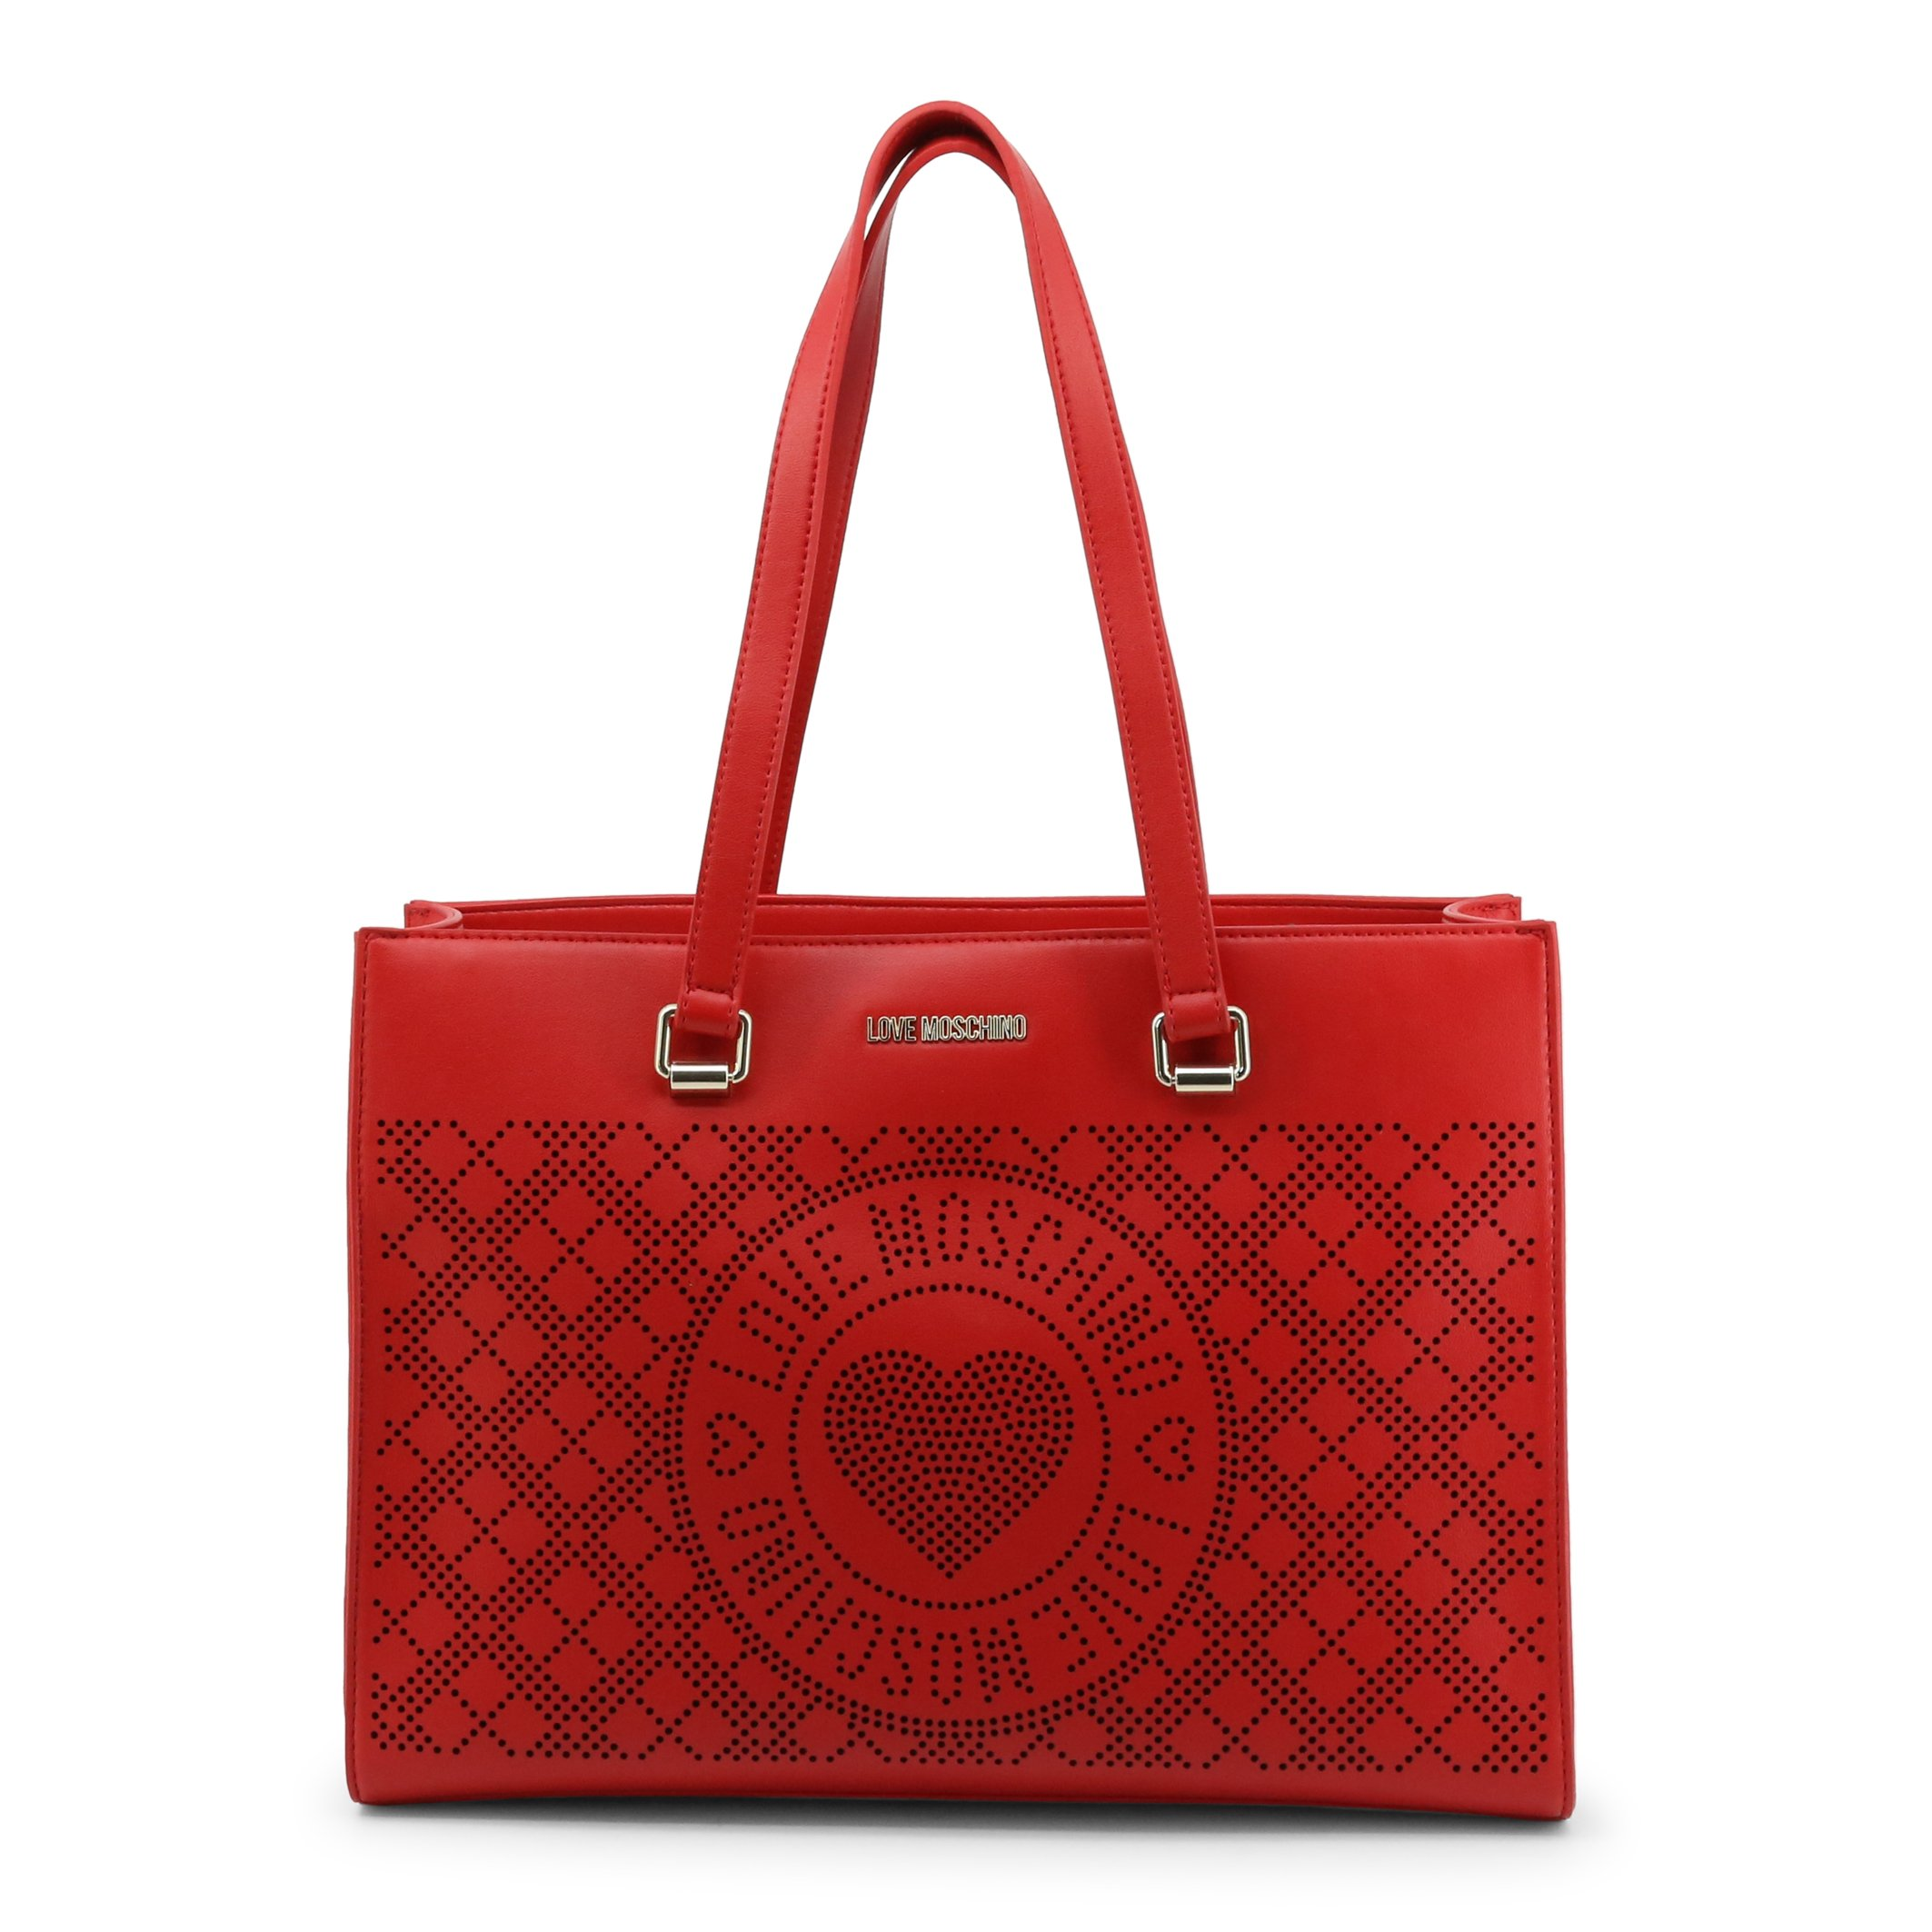 Love Moschino Women's Shoulder Bag Various Colours JC4211PP0CKB1 - red NOSIZE